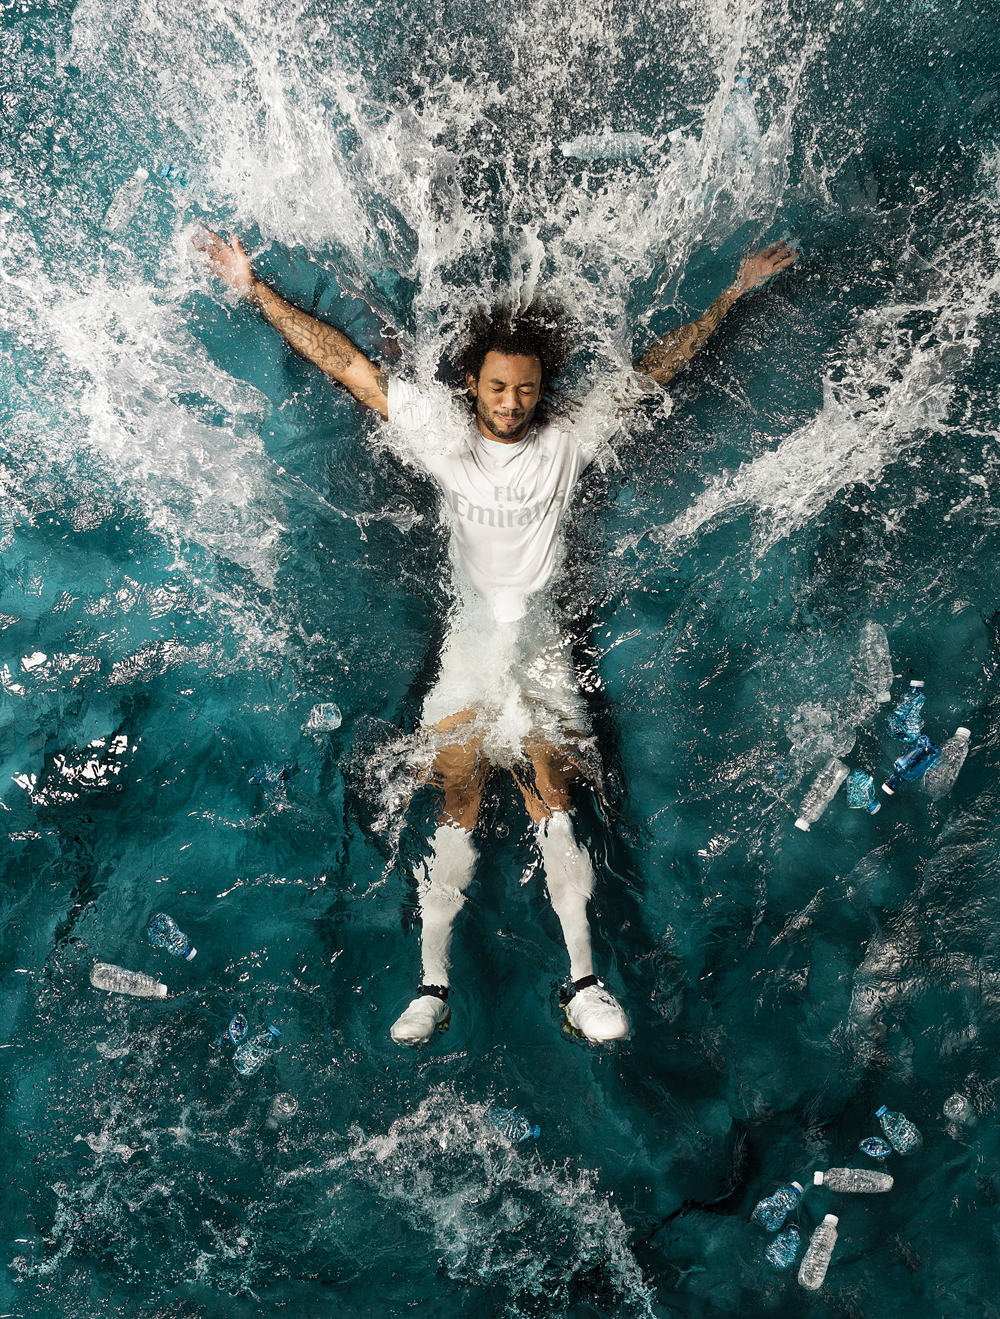 adidas-unveils-first-performance-apparel-and-footwear-collection-made-of-recycled-ocean-plastic-4